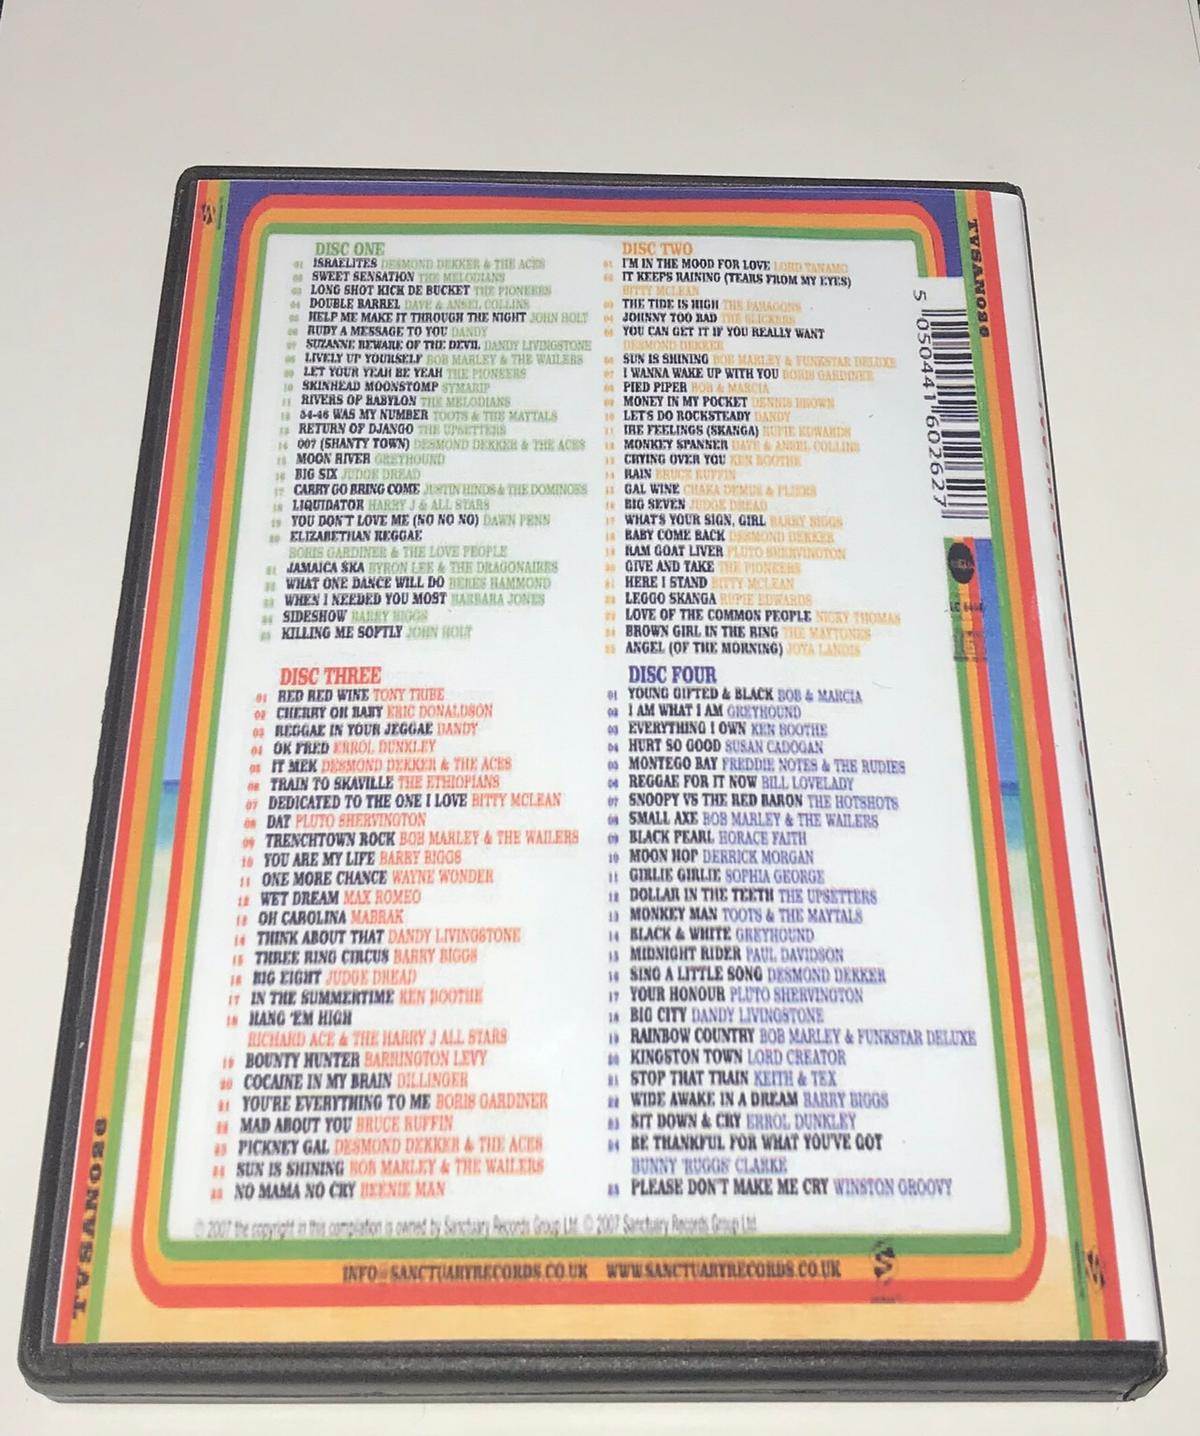 100 Huge huge hits of reggae 4xcd pack Postage available